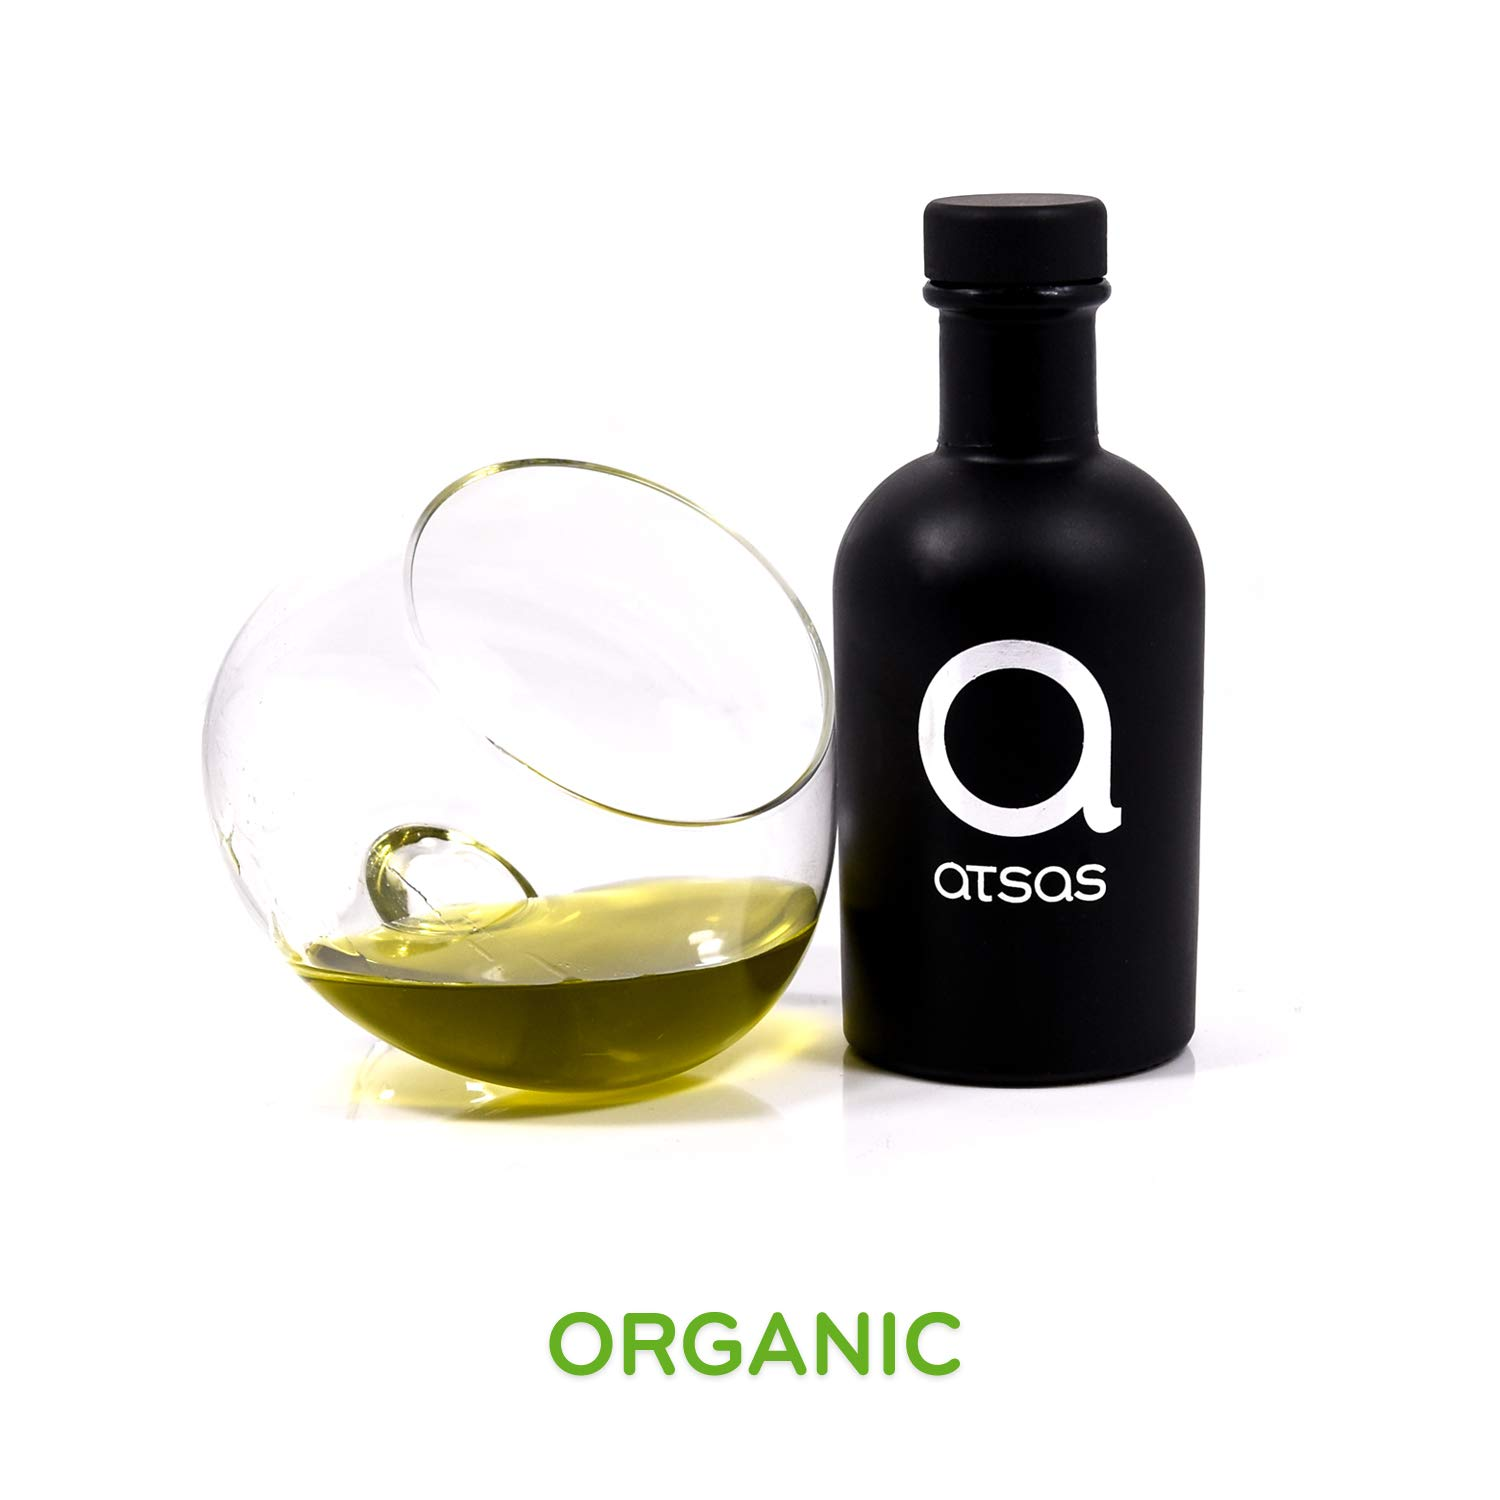 Pure Organic Extra Virgin Olive Oil with High Phenolic Content | Rich in Health-Boosting Phenols and Organic Oleocanthal Compound | Premium Product of Cyprus | Multiple Award-Winning | 100ml by Atsas